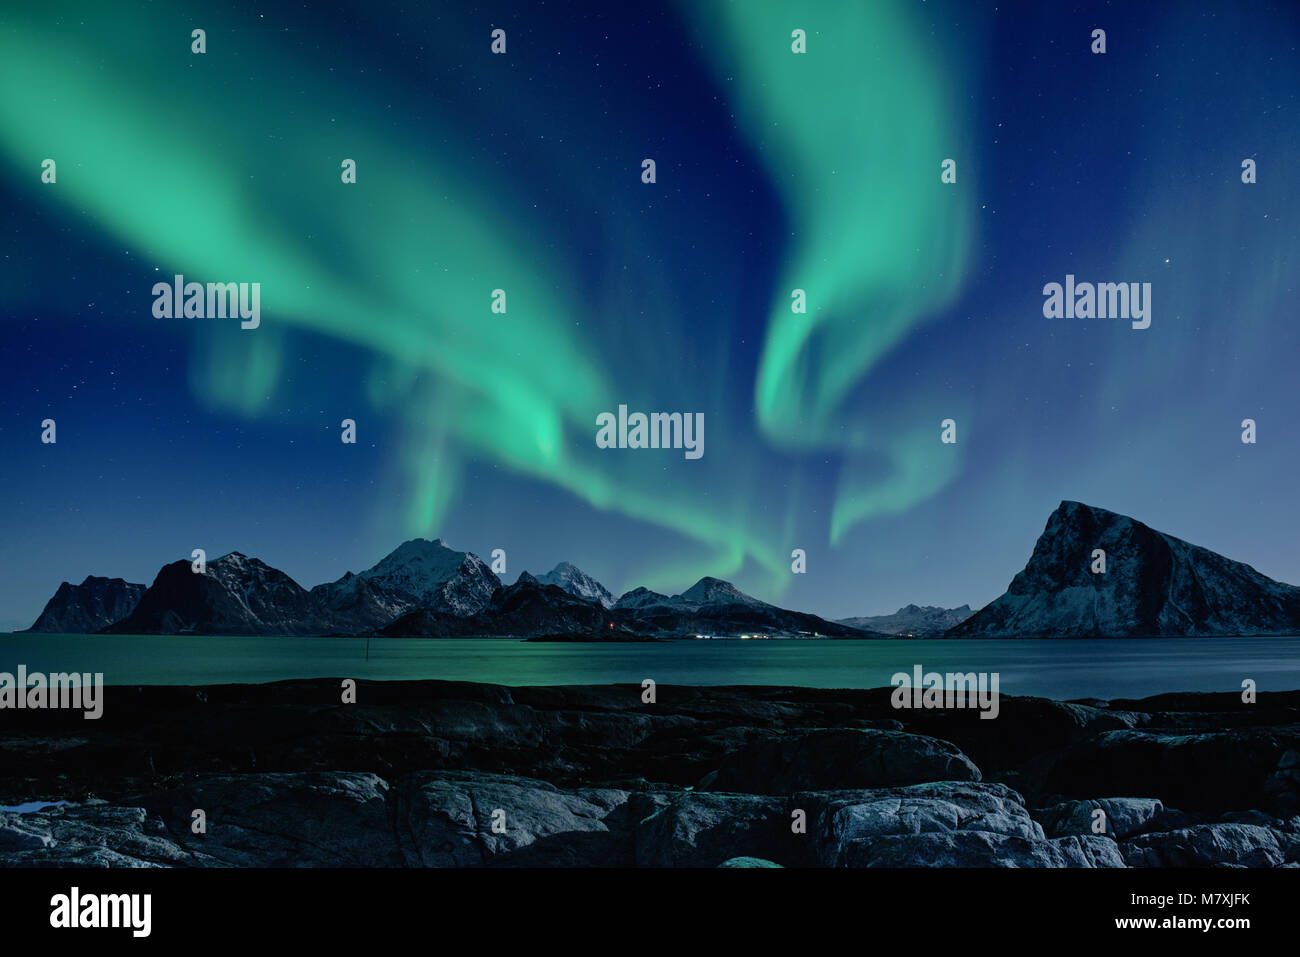 Northern Lights in Norway - Stock Image